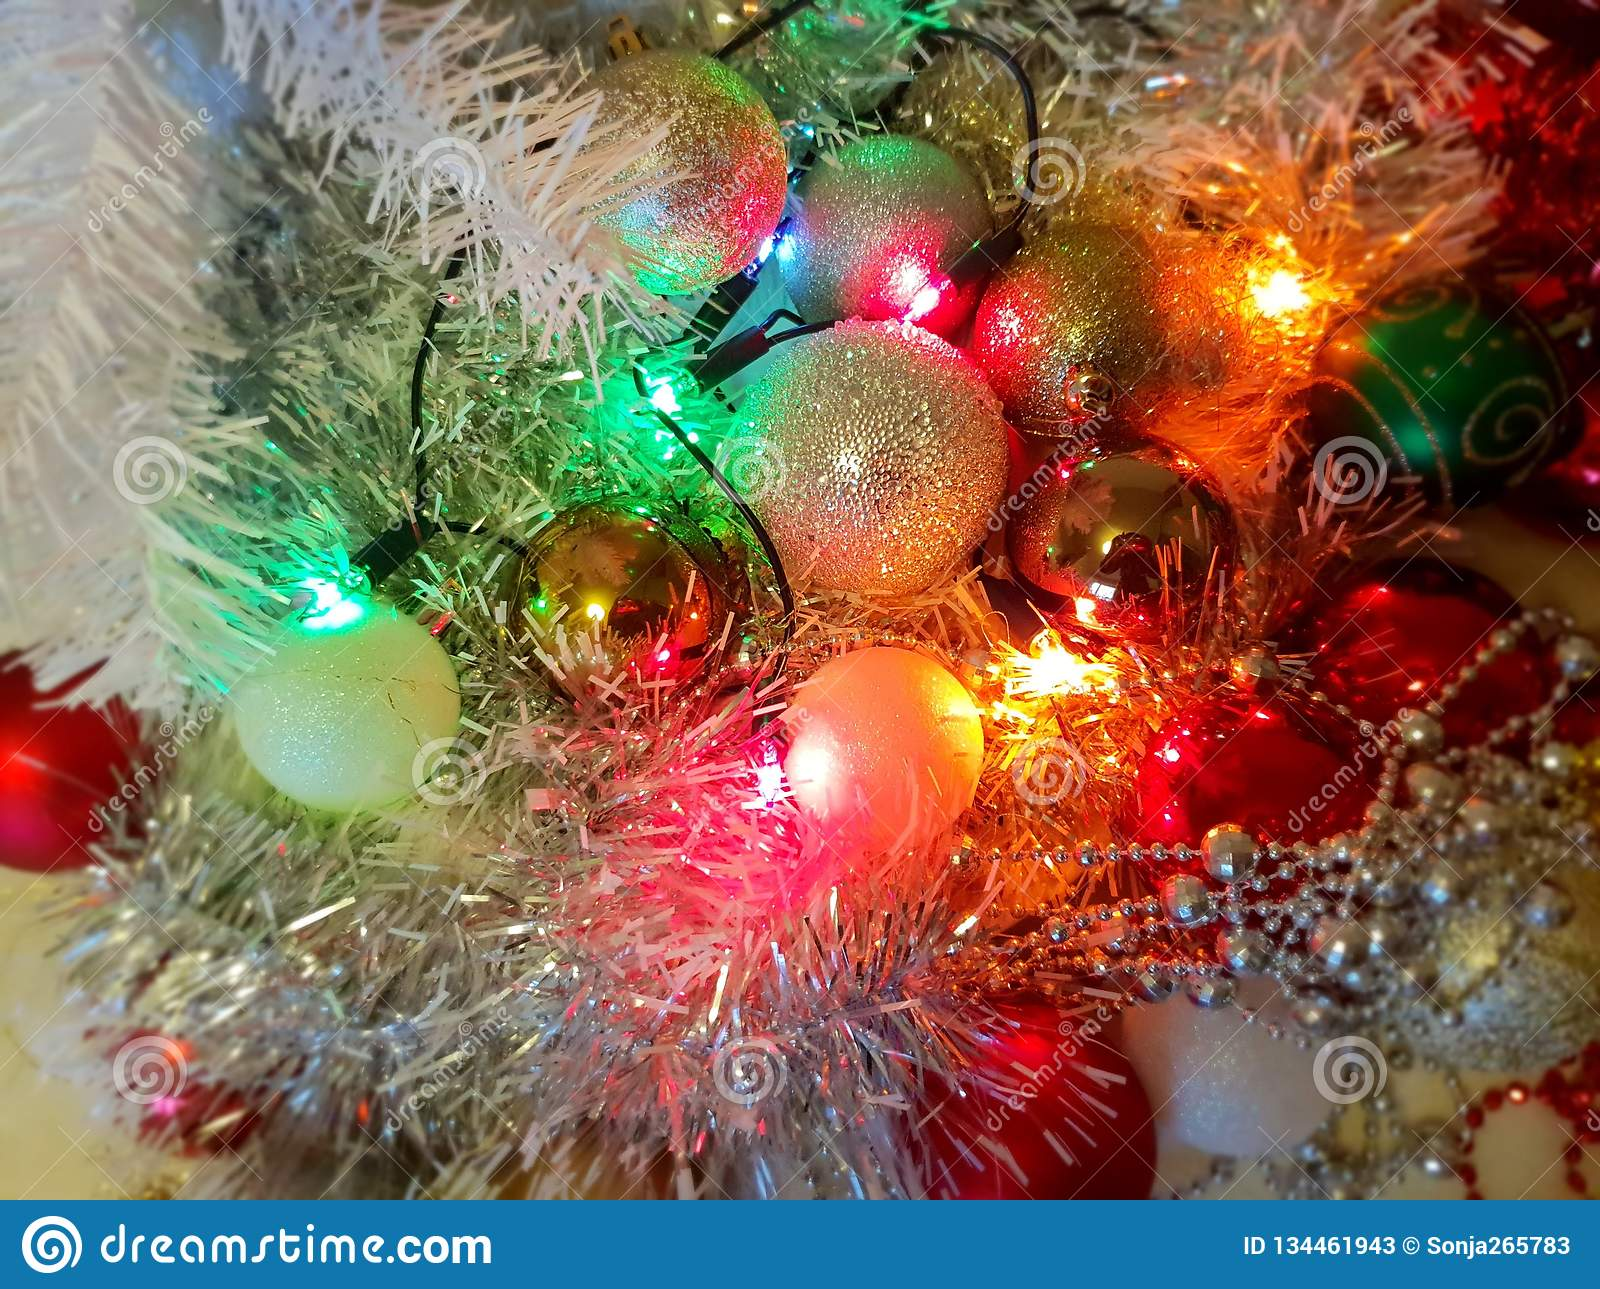 Colorful Christmas Tree Ideas.White Christmas Decoration Colorful White Balls Silver